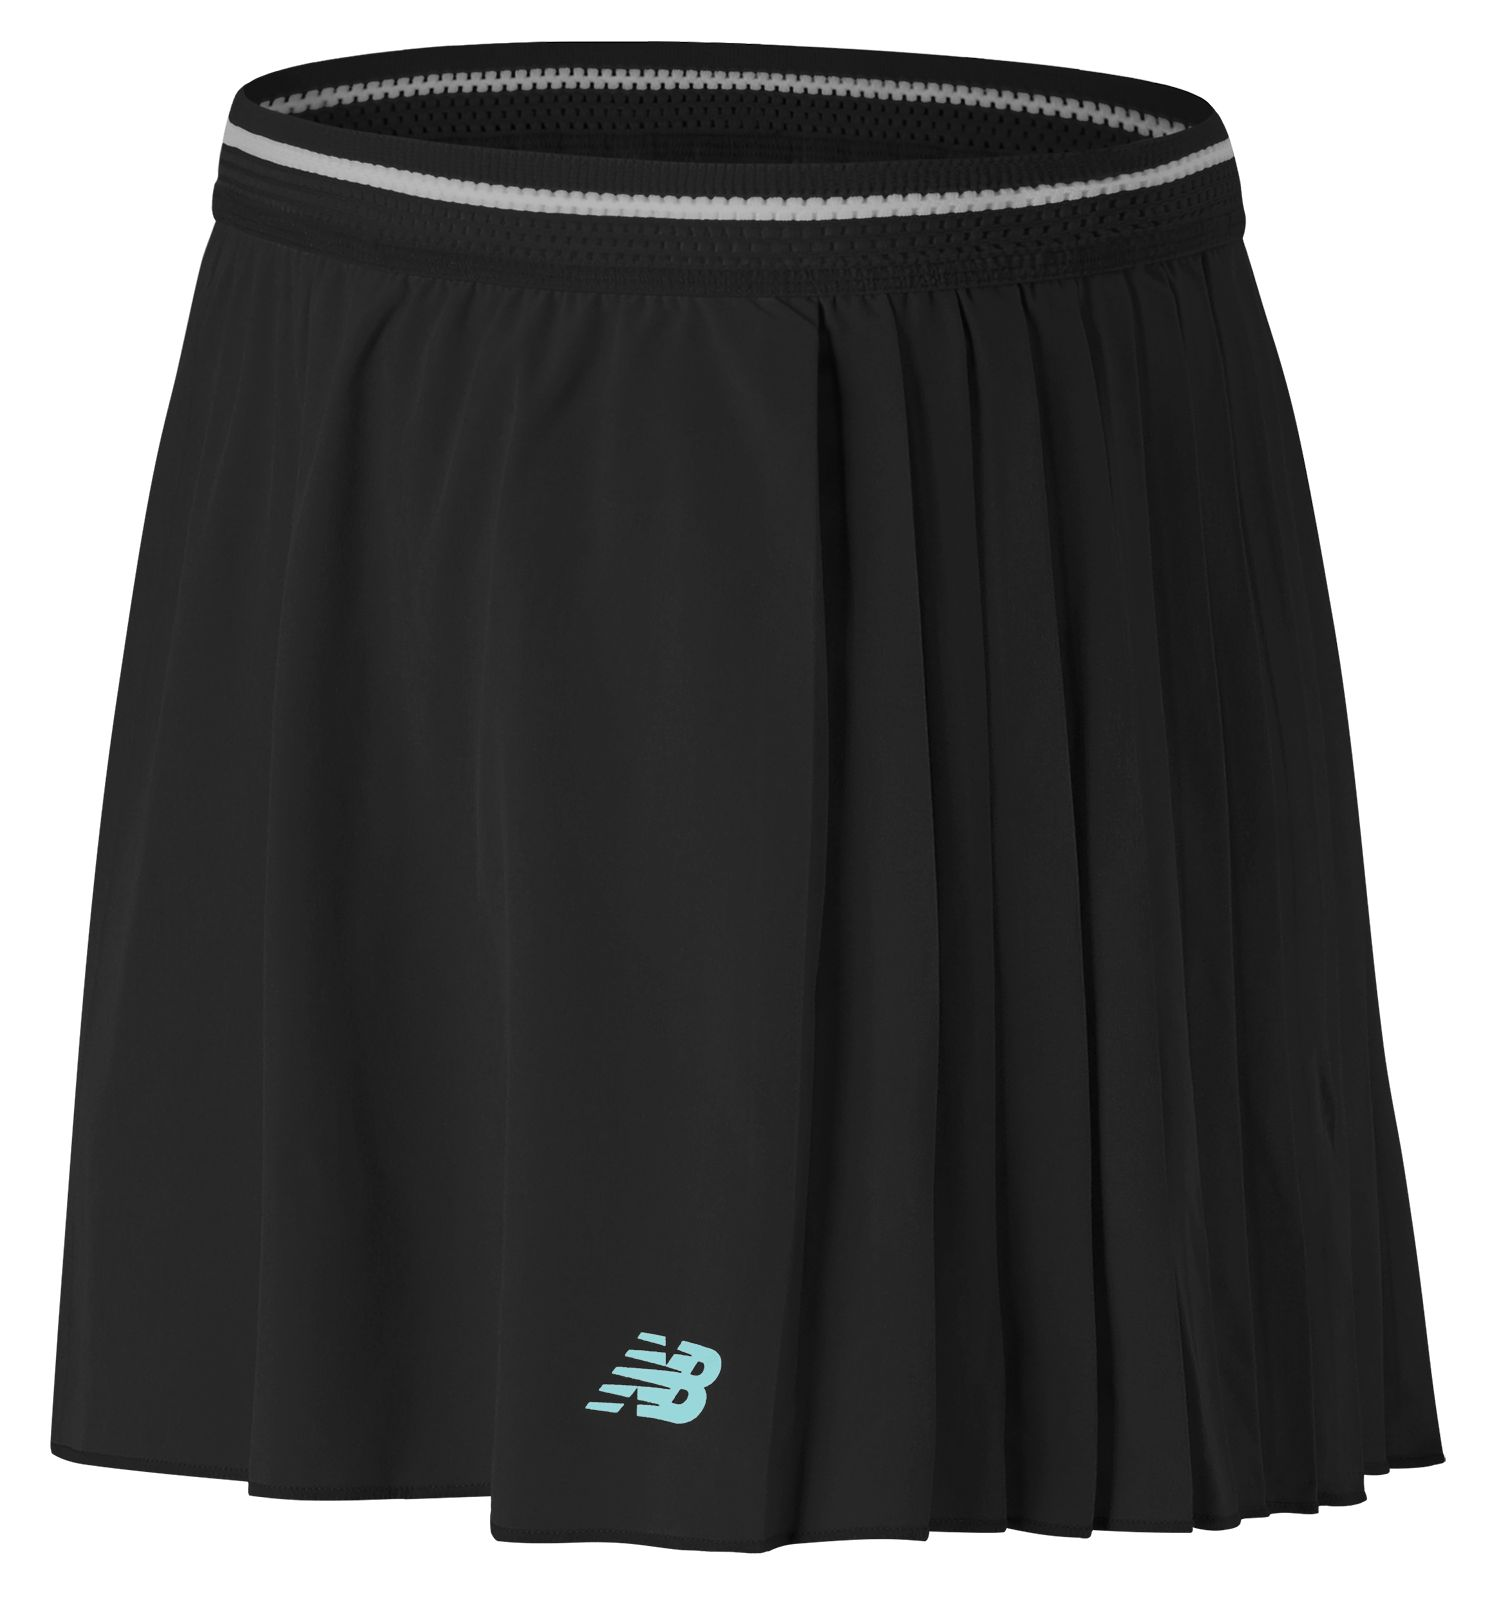 New Balance : Tournament Skort : Women's Apparel Outlet : WK53439BK